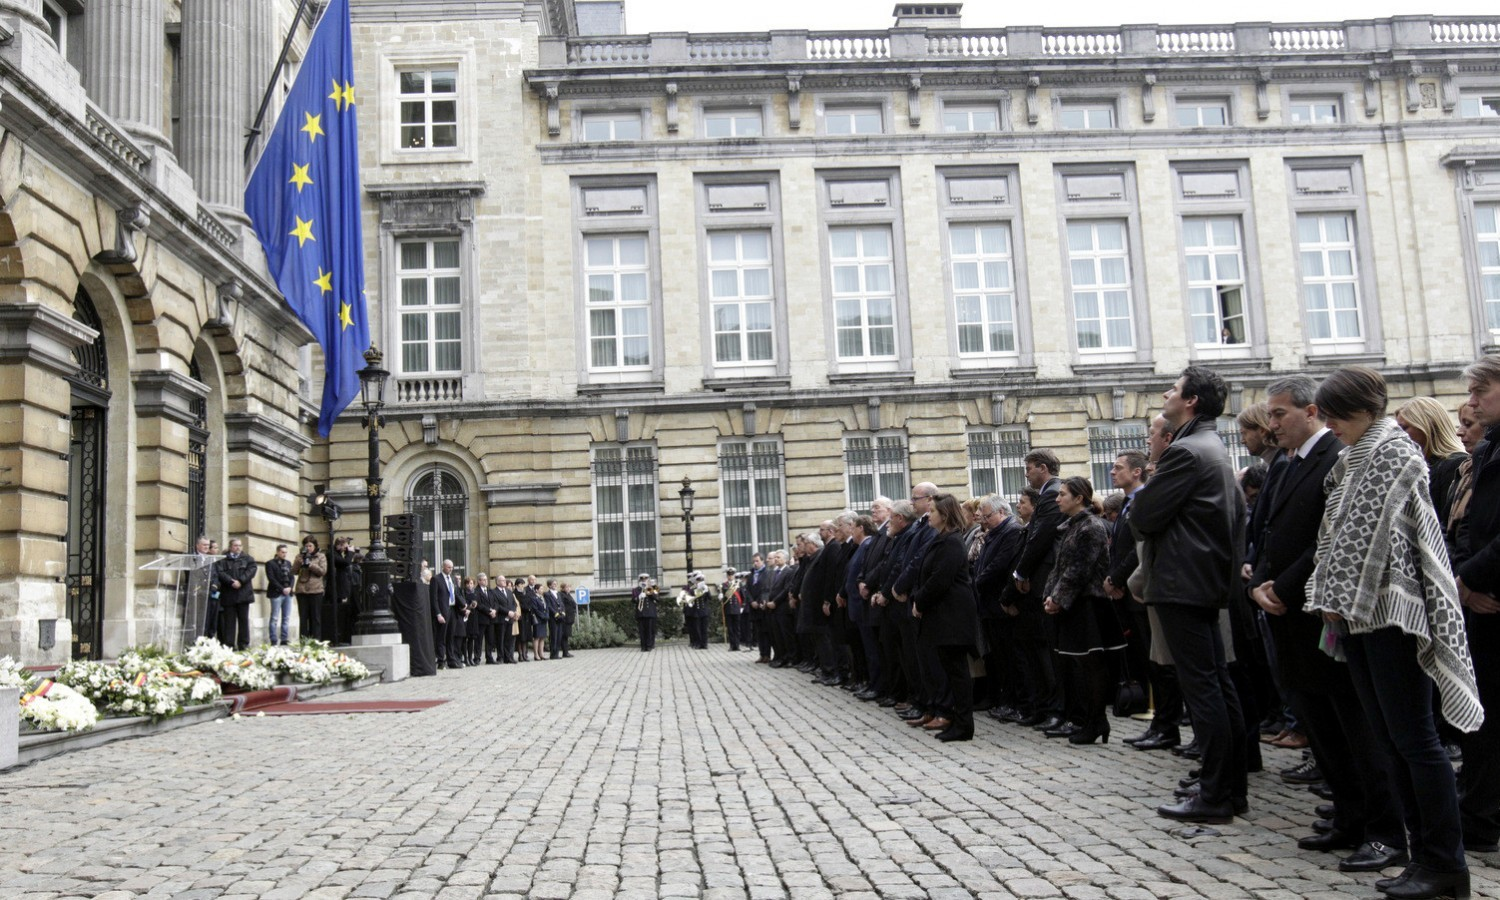 Minute of silence on March 34, 2016, held at Belgian Parliament for victims of the terror attacks / ec.europa.eu